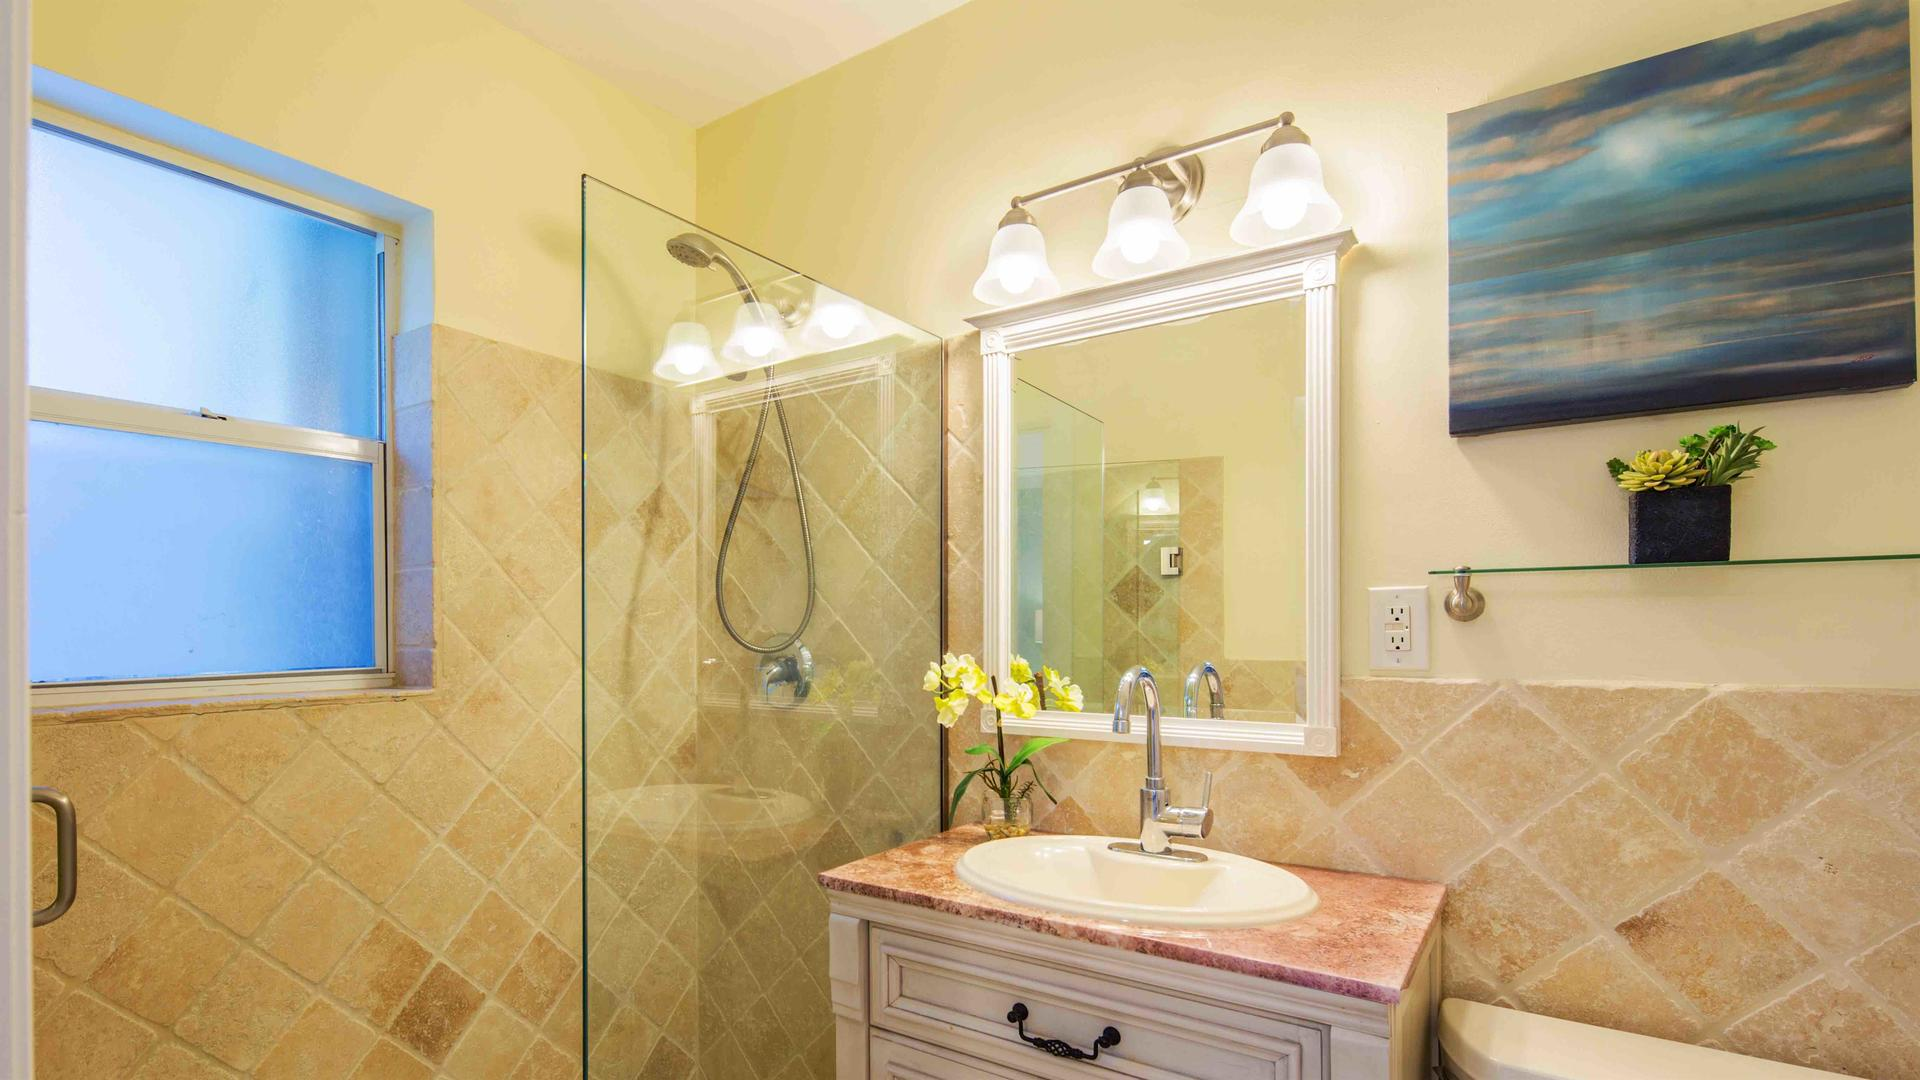 The master bathroom is en suite and has a large glass shower...